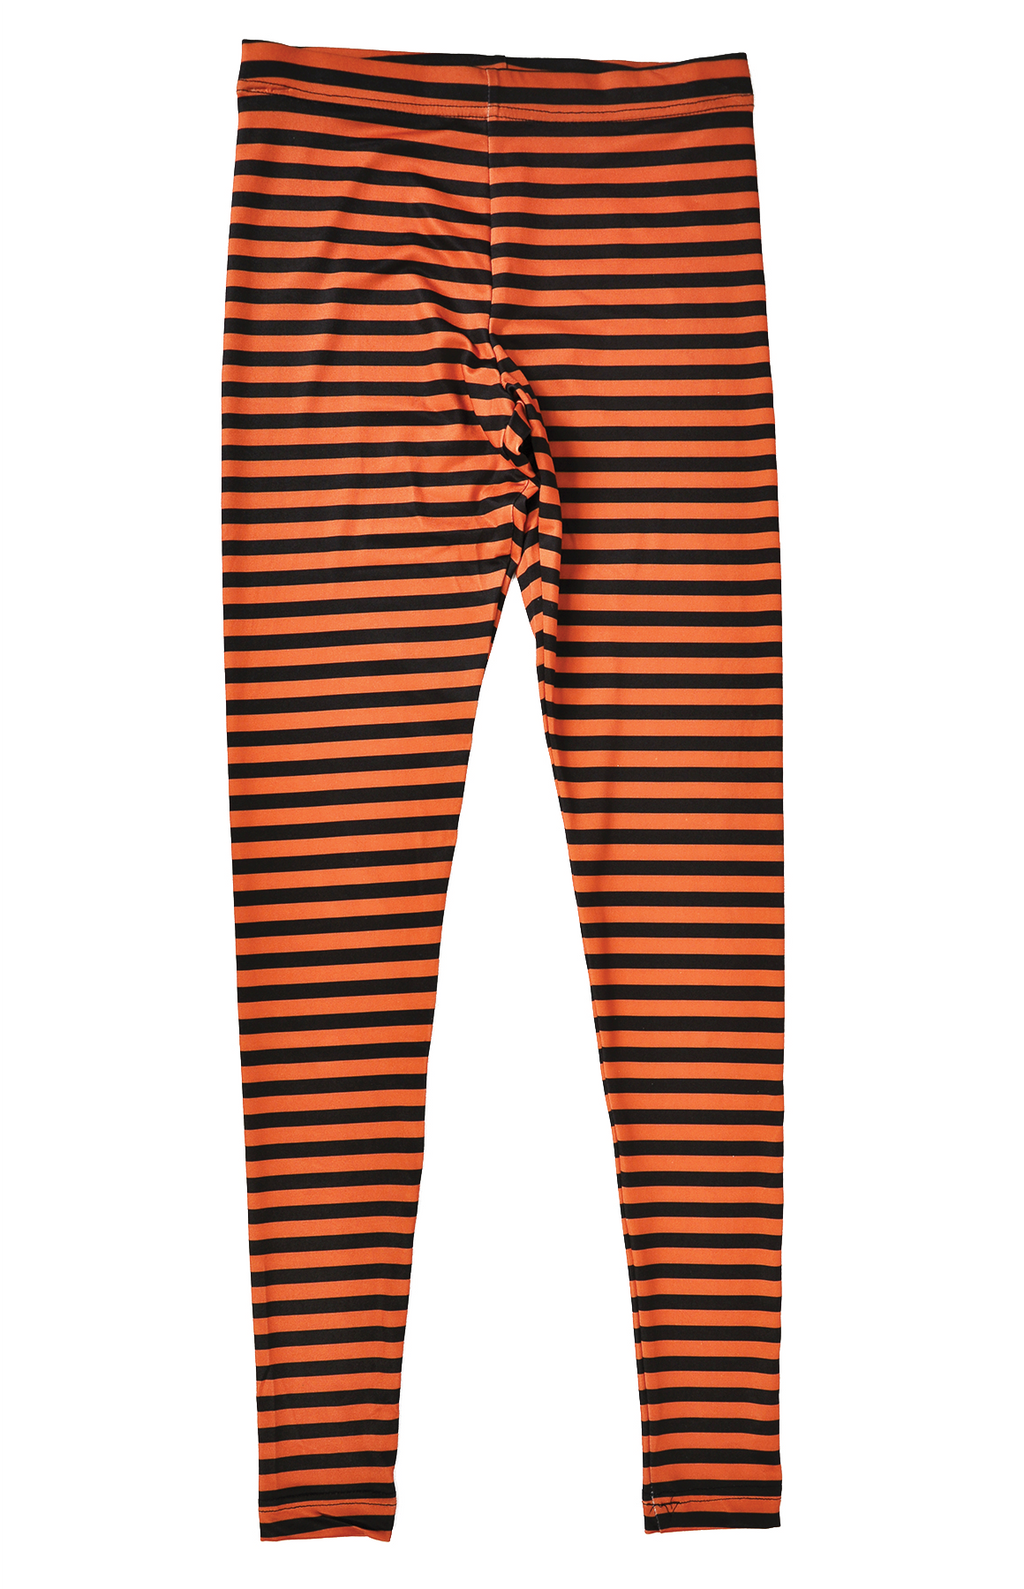 Adult Women's Halloween Orange and Black Striped Leggings